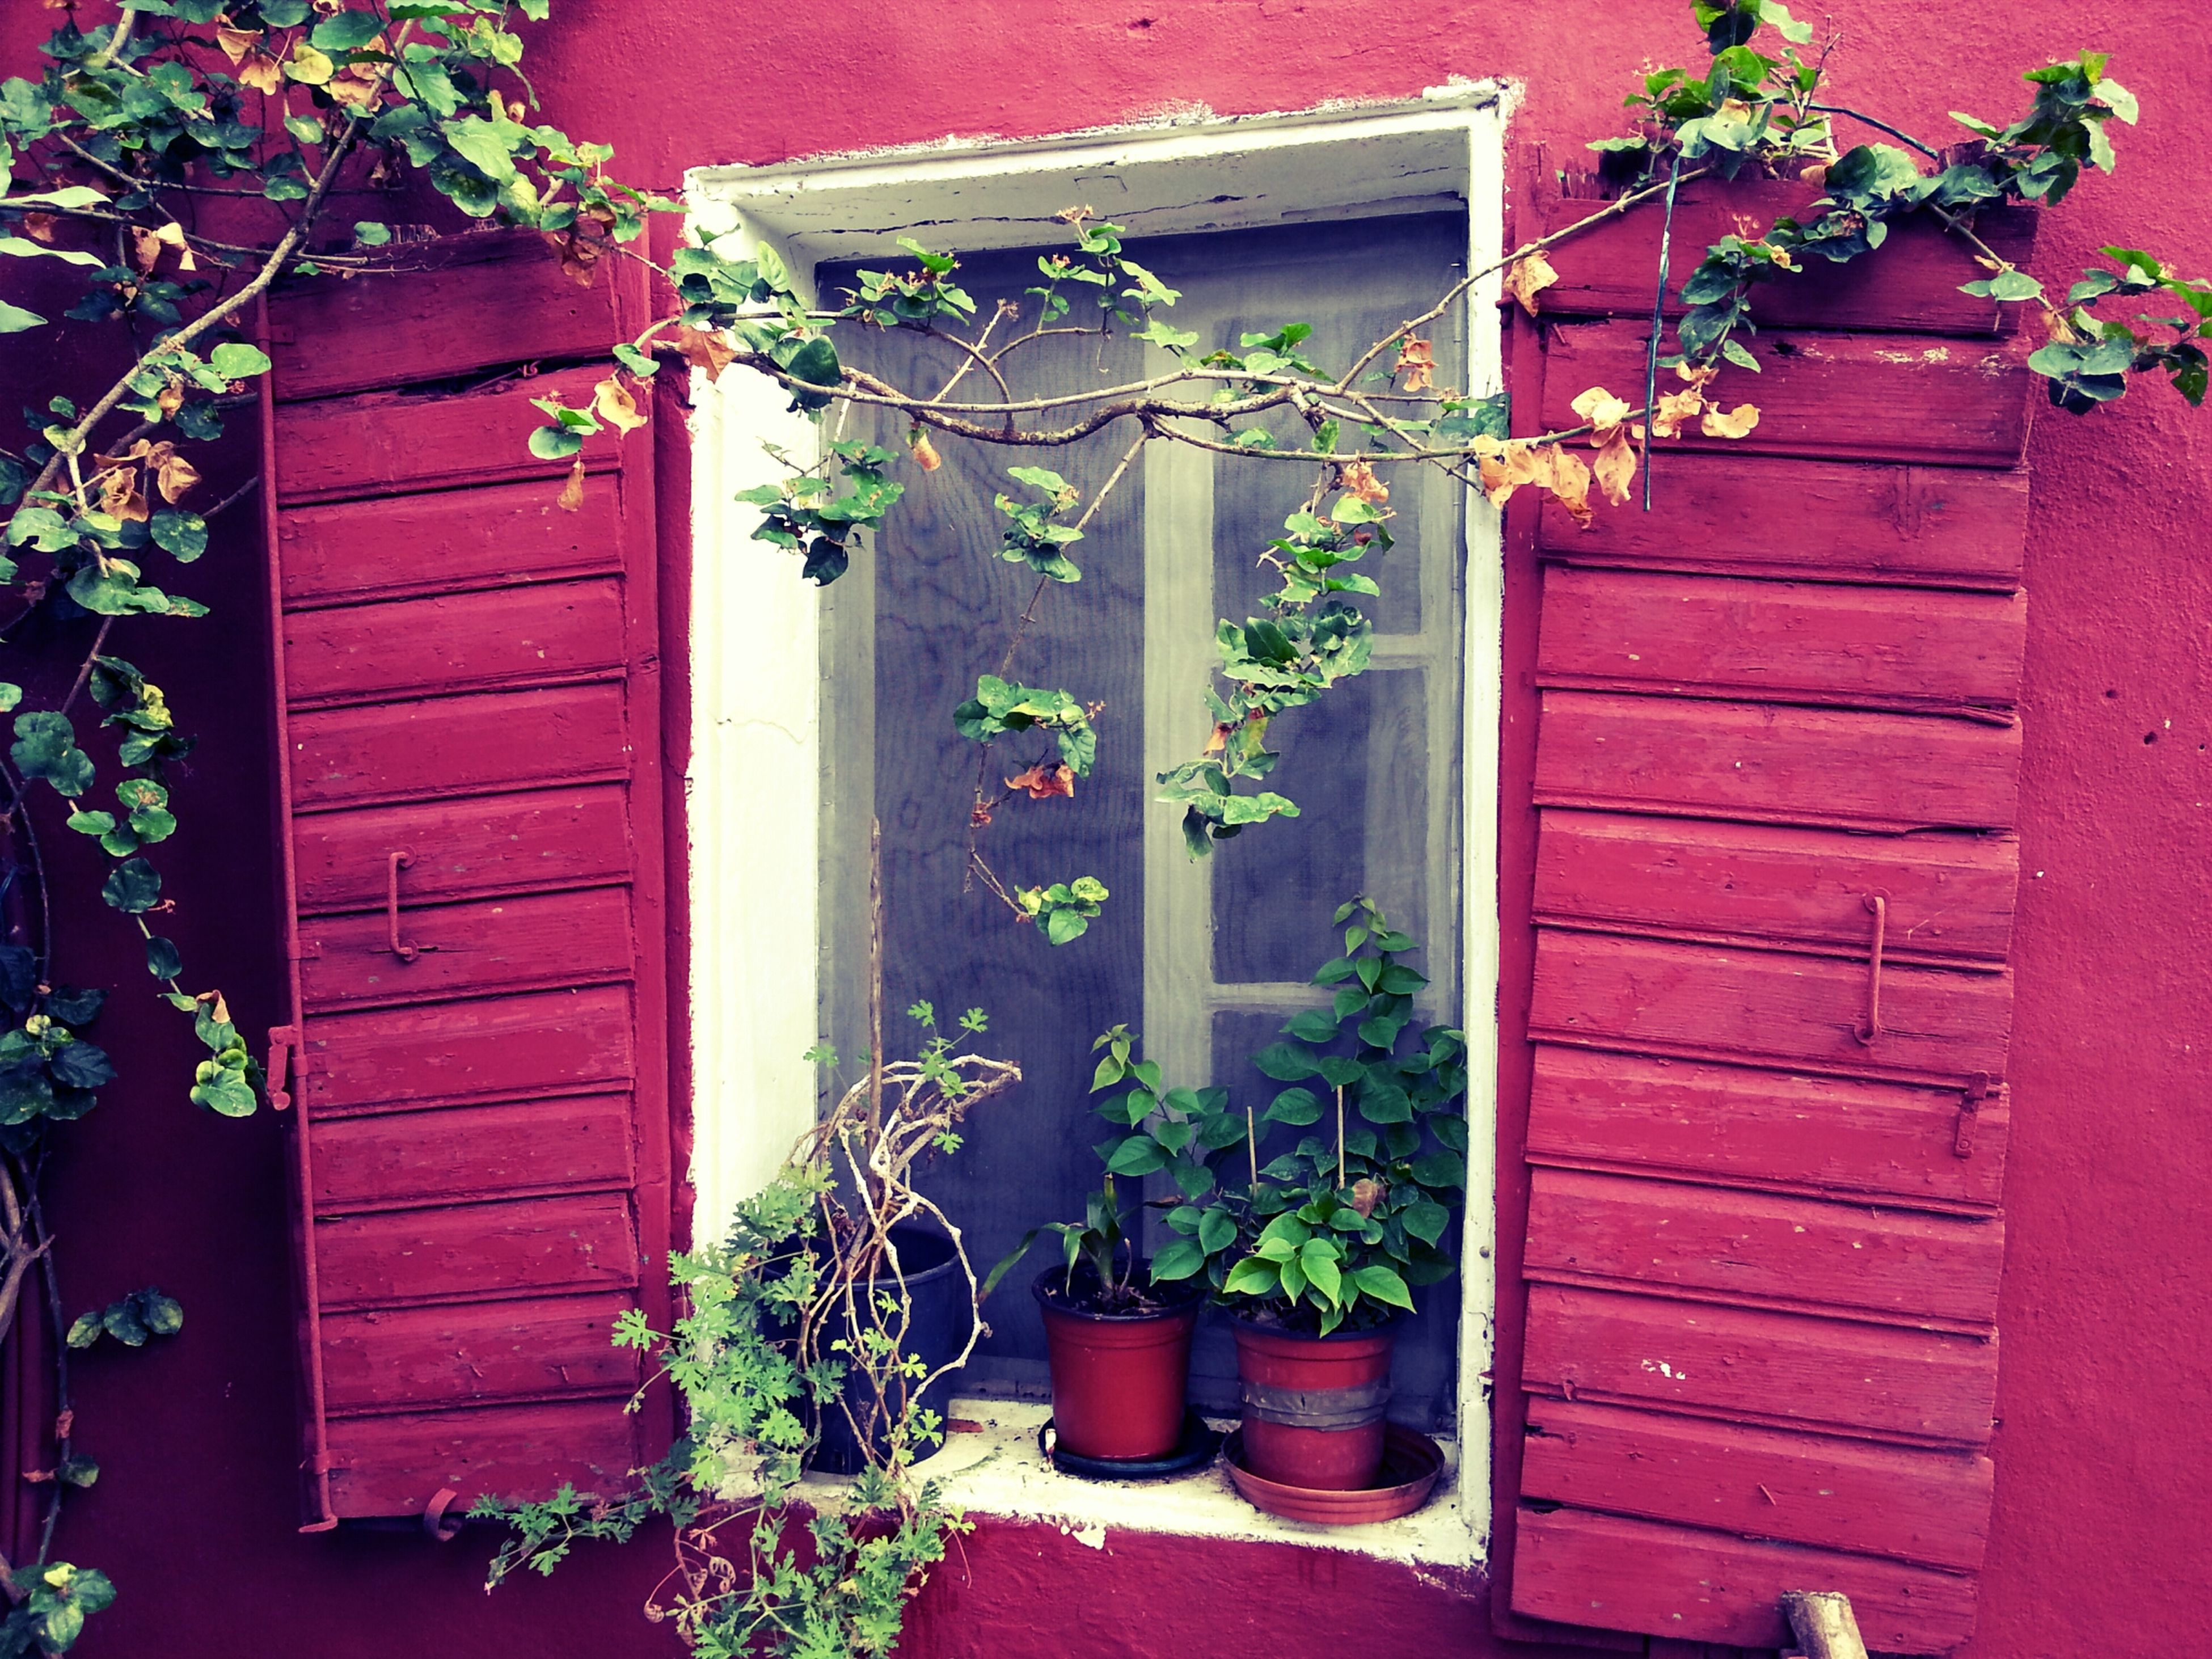 plant, potted plant, door, house, built structure, building exterior, architecture, growth, closed, window, red, flower, wood - material, wall - building feature, leaf, entrance, wall, ivy, flower pot, residential structure